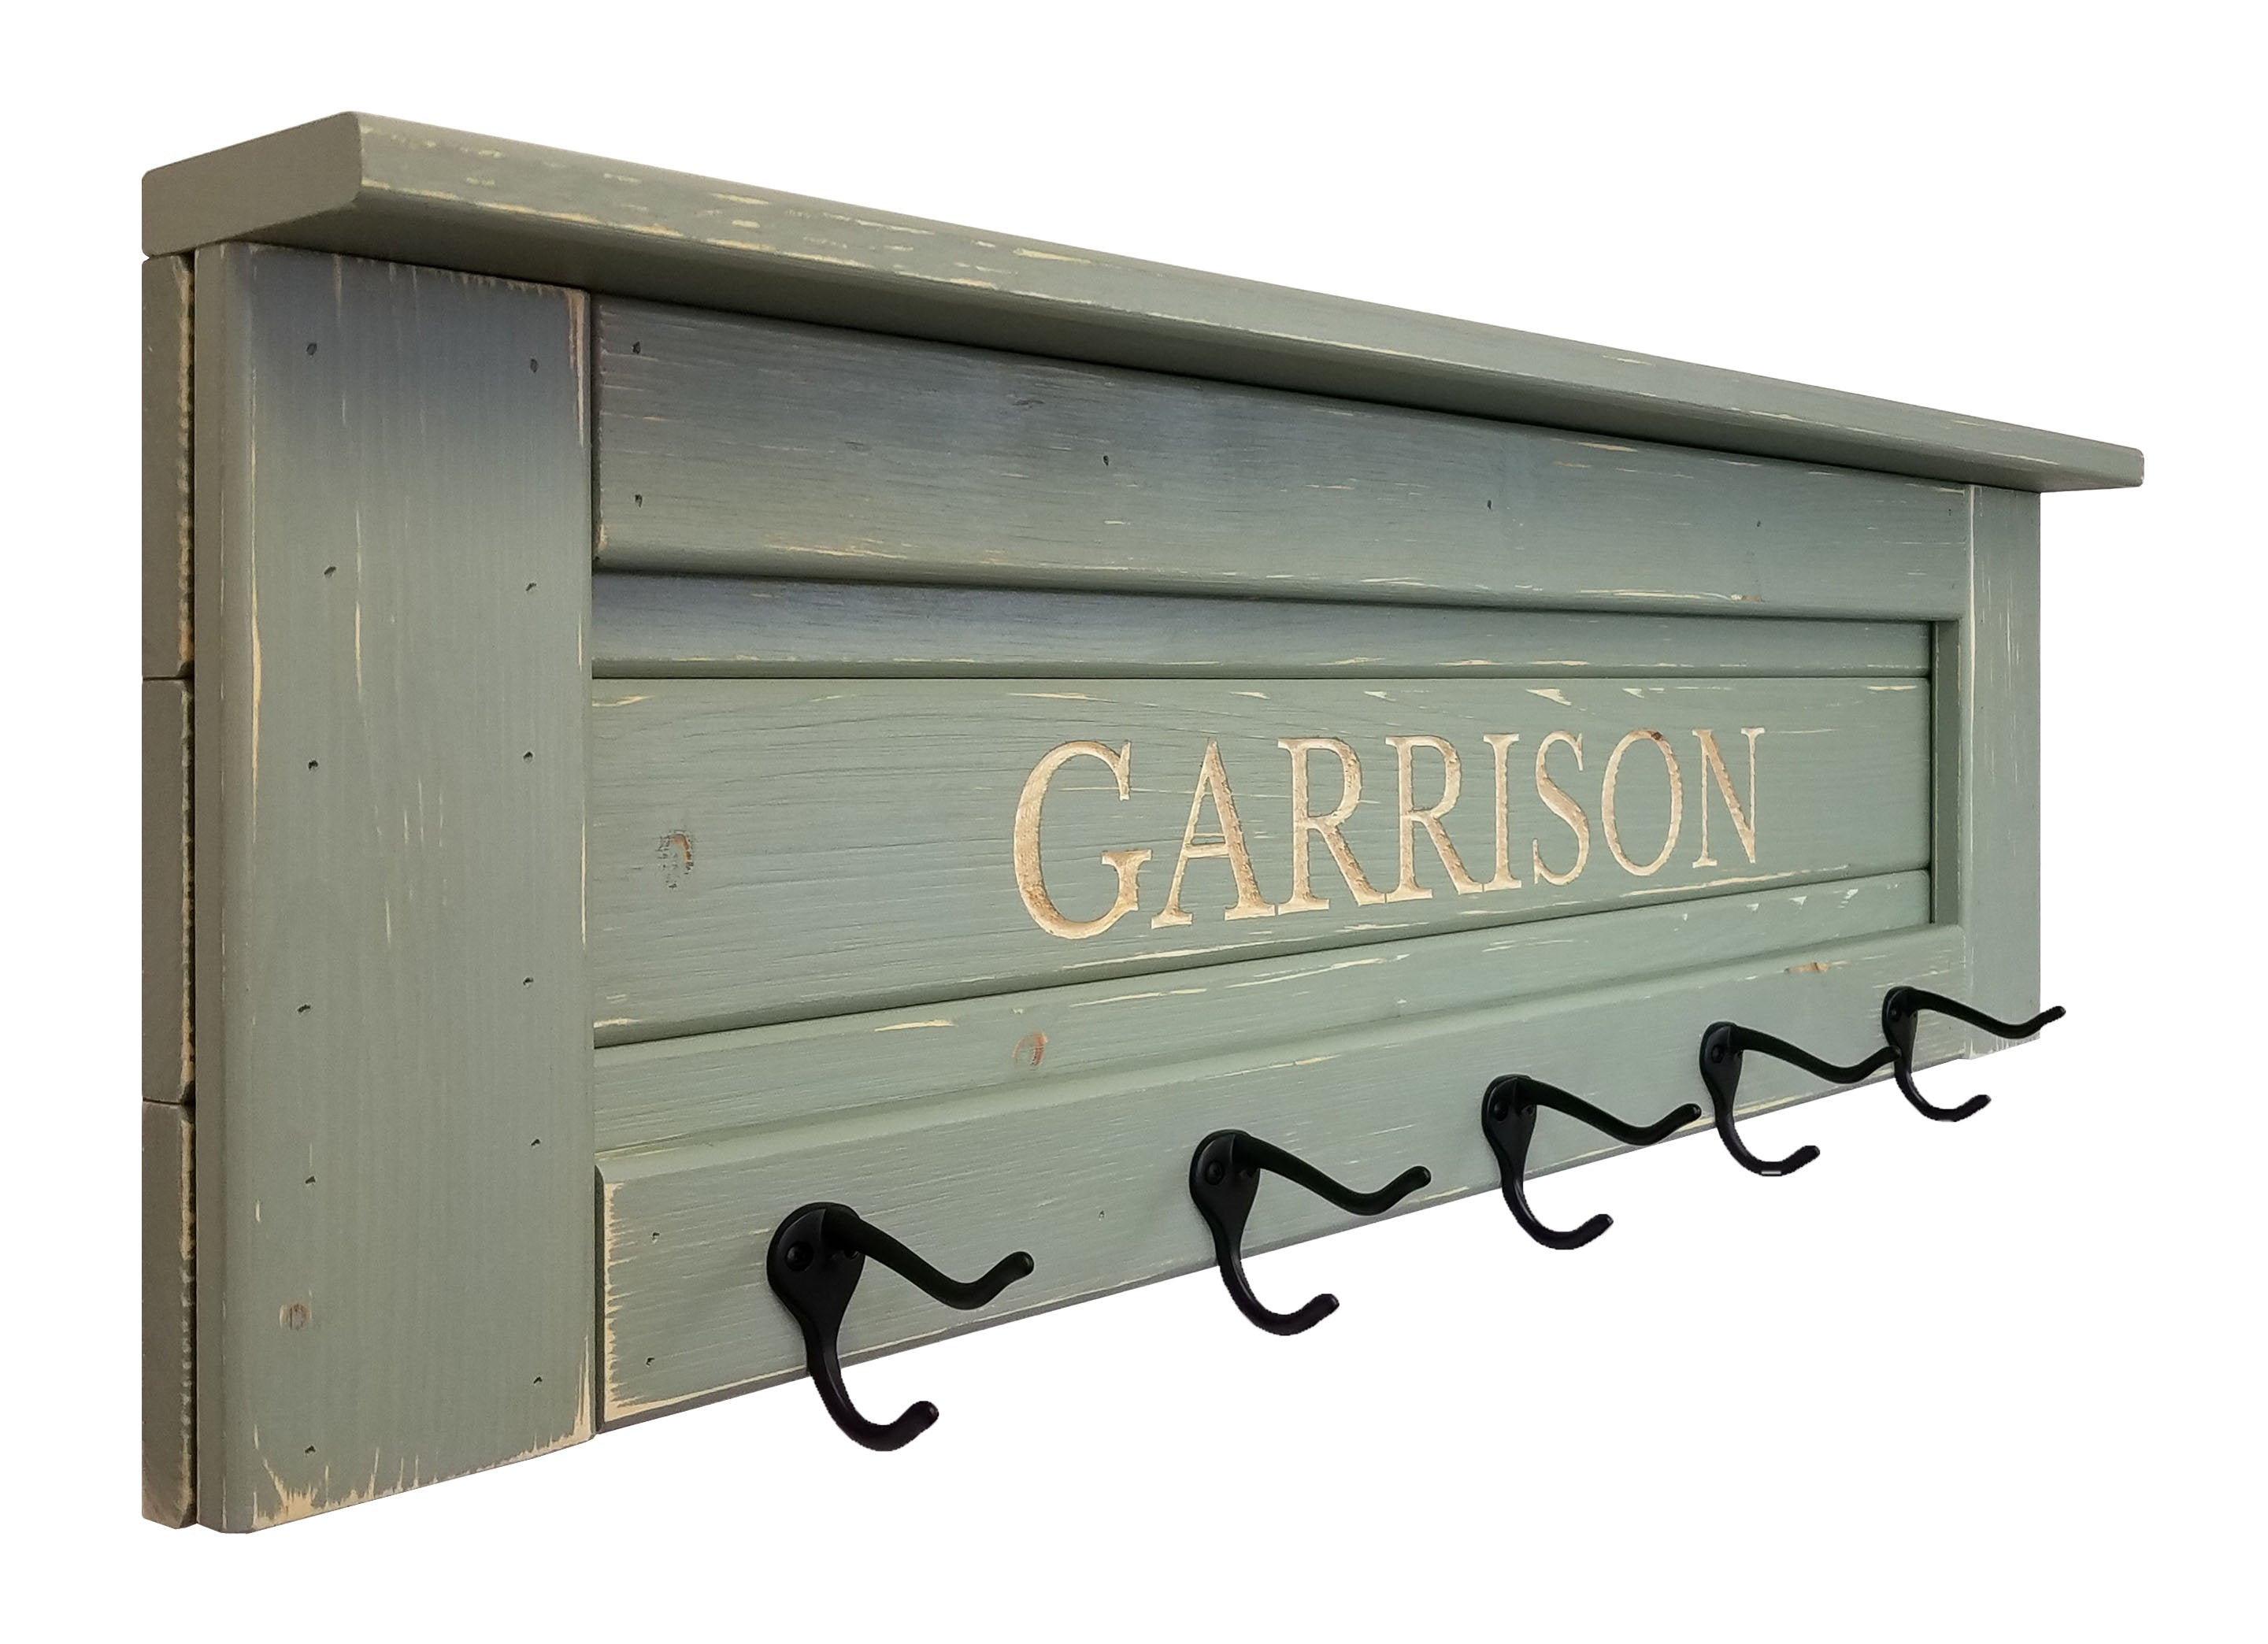 Carved Lettering Farmhouse Shelf and Wall Hooks - 20 PaintColors - Renewed Decor & Storage